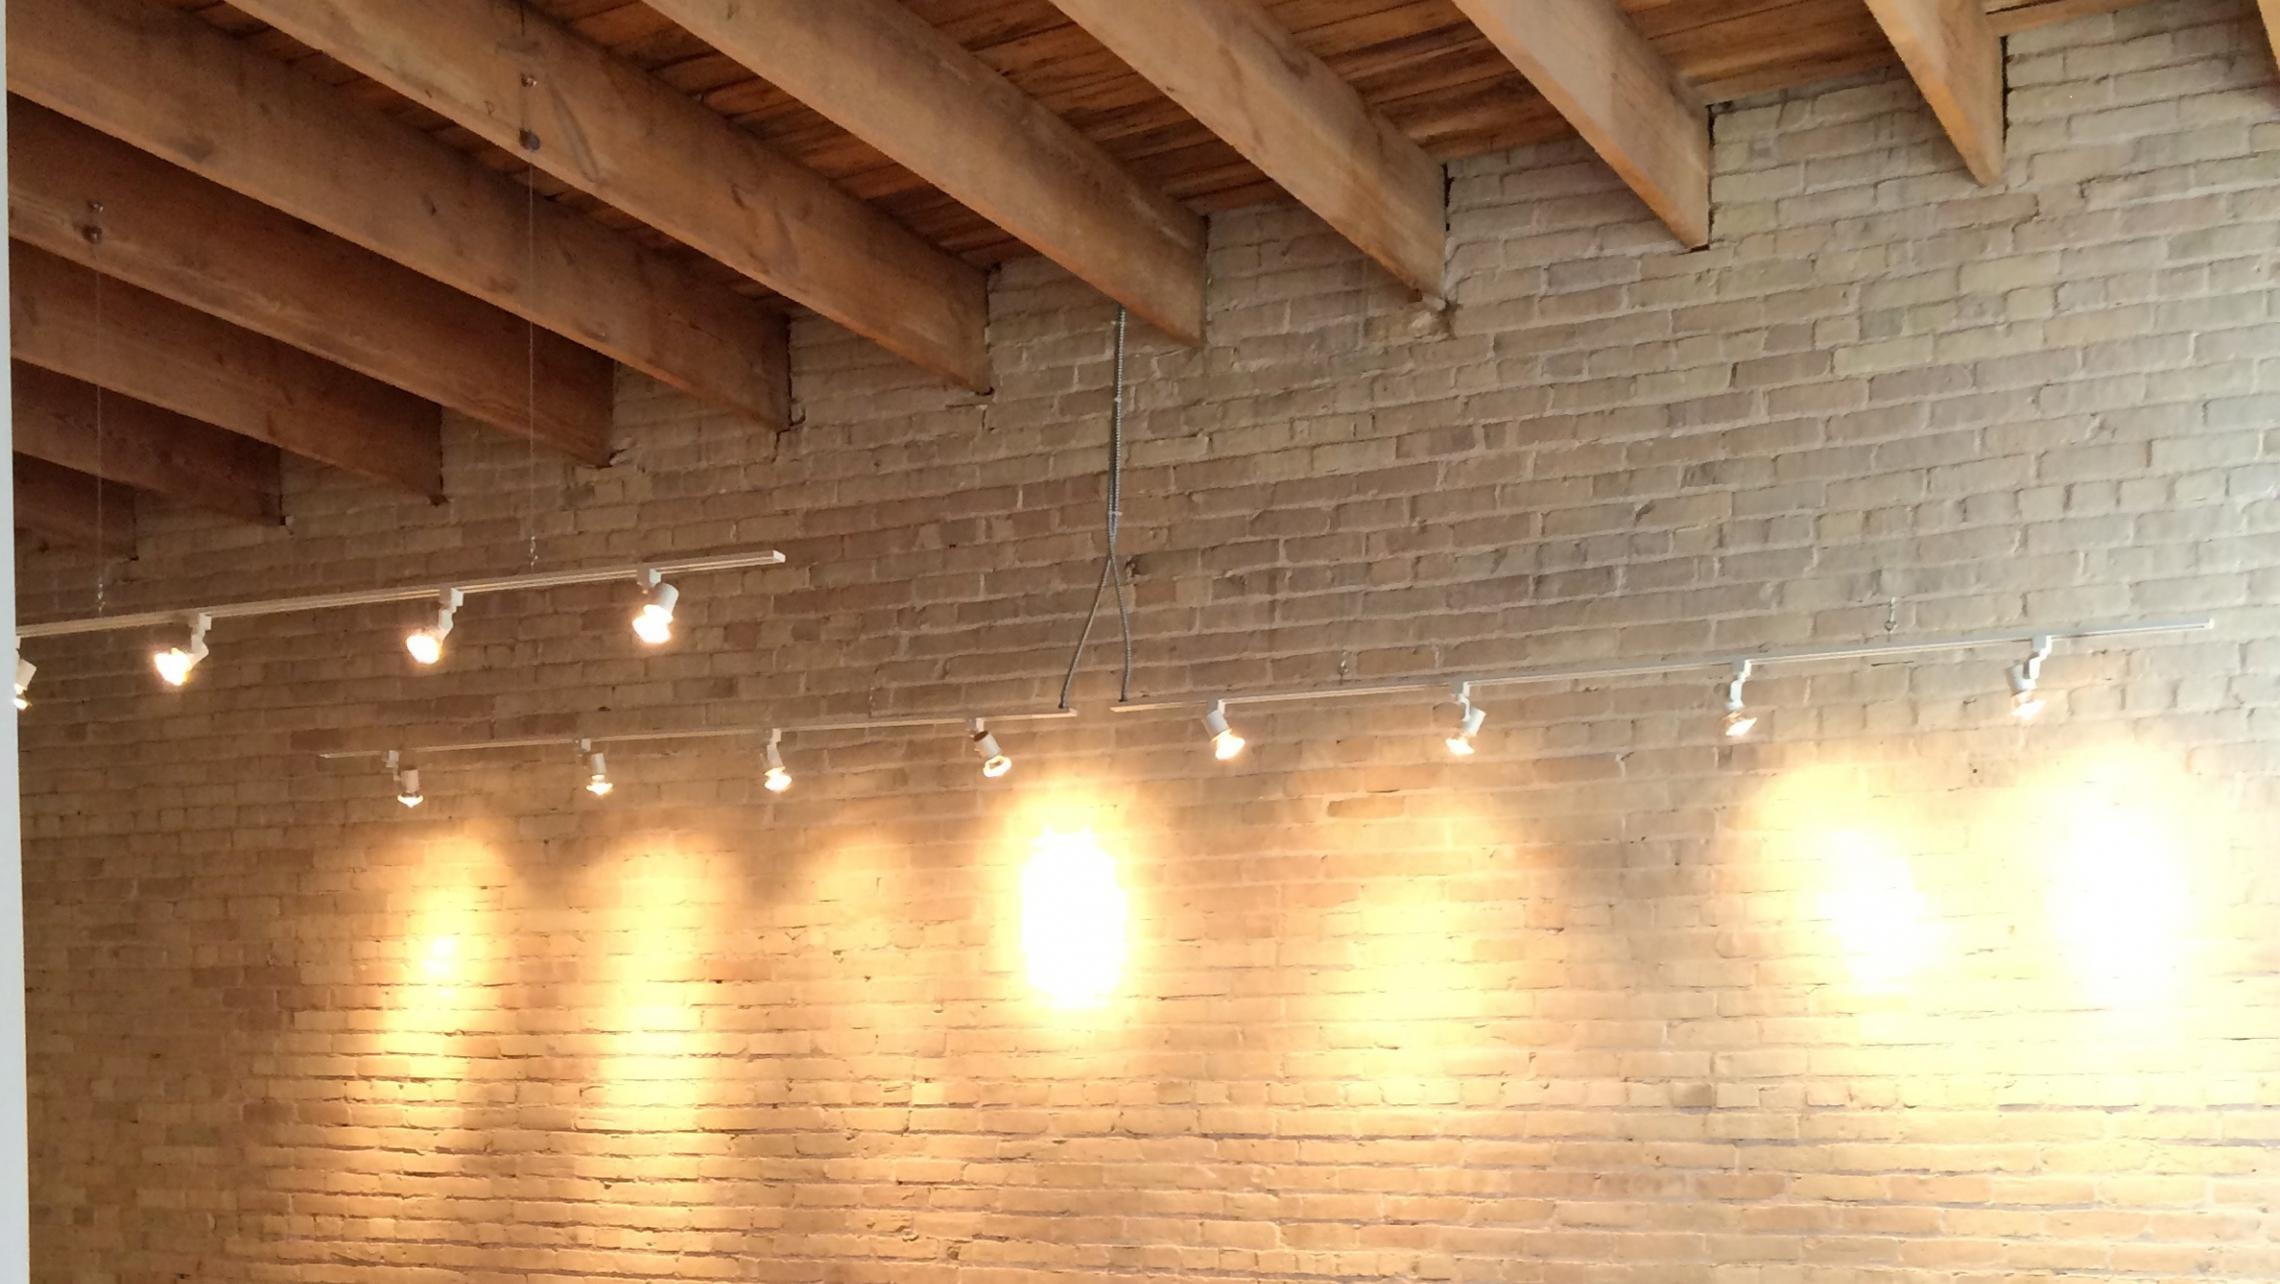 ULI Tobacco Lofts - W211 - Exposed Brick and Wood Beams